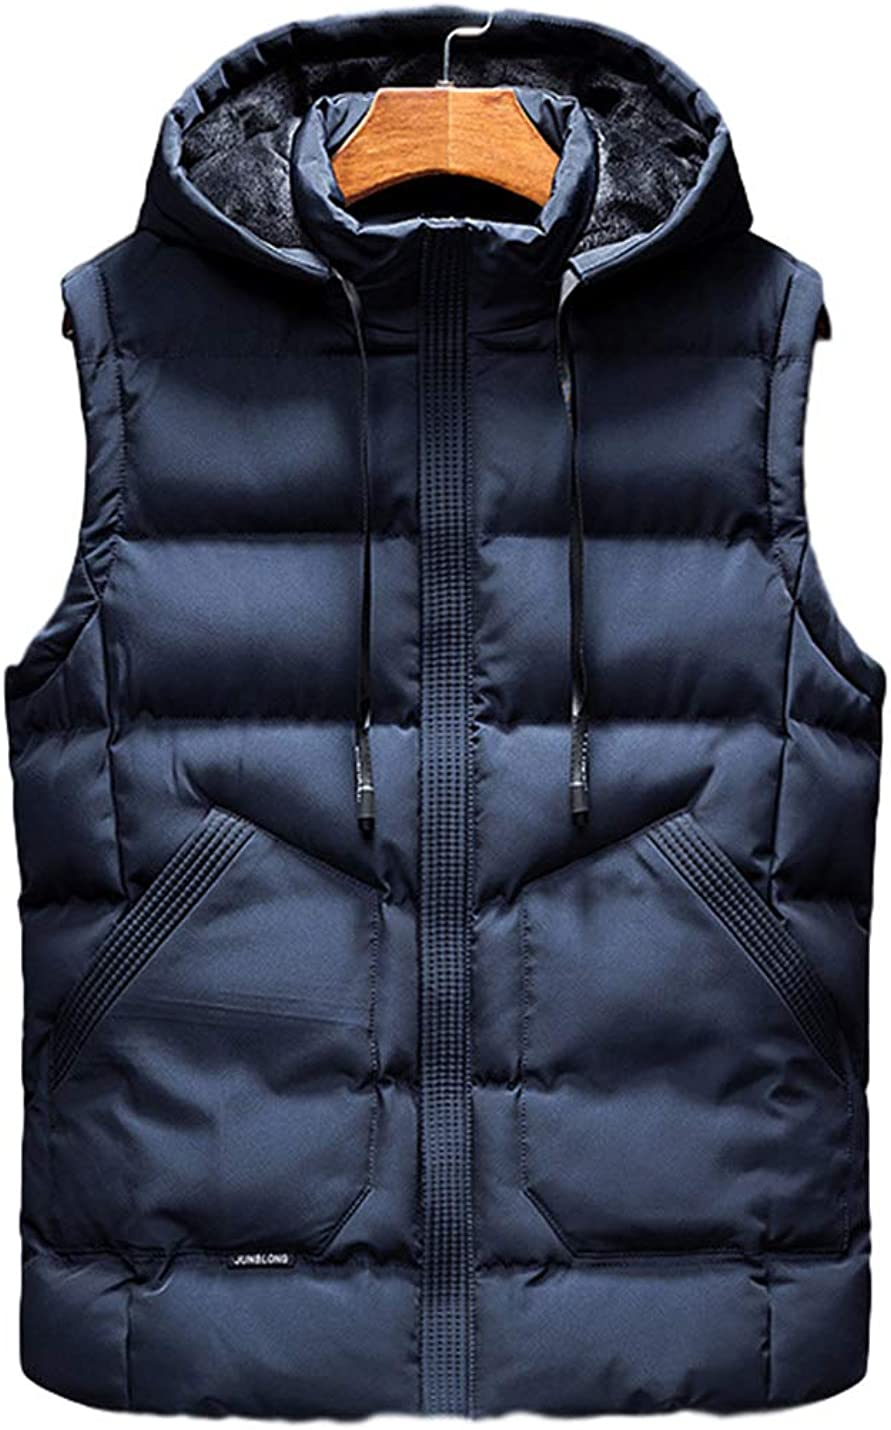 Yimoon Men's Warm Hooded Fleece Lined Sleeveless Quilted Padded Puffer Vest Gilet